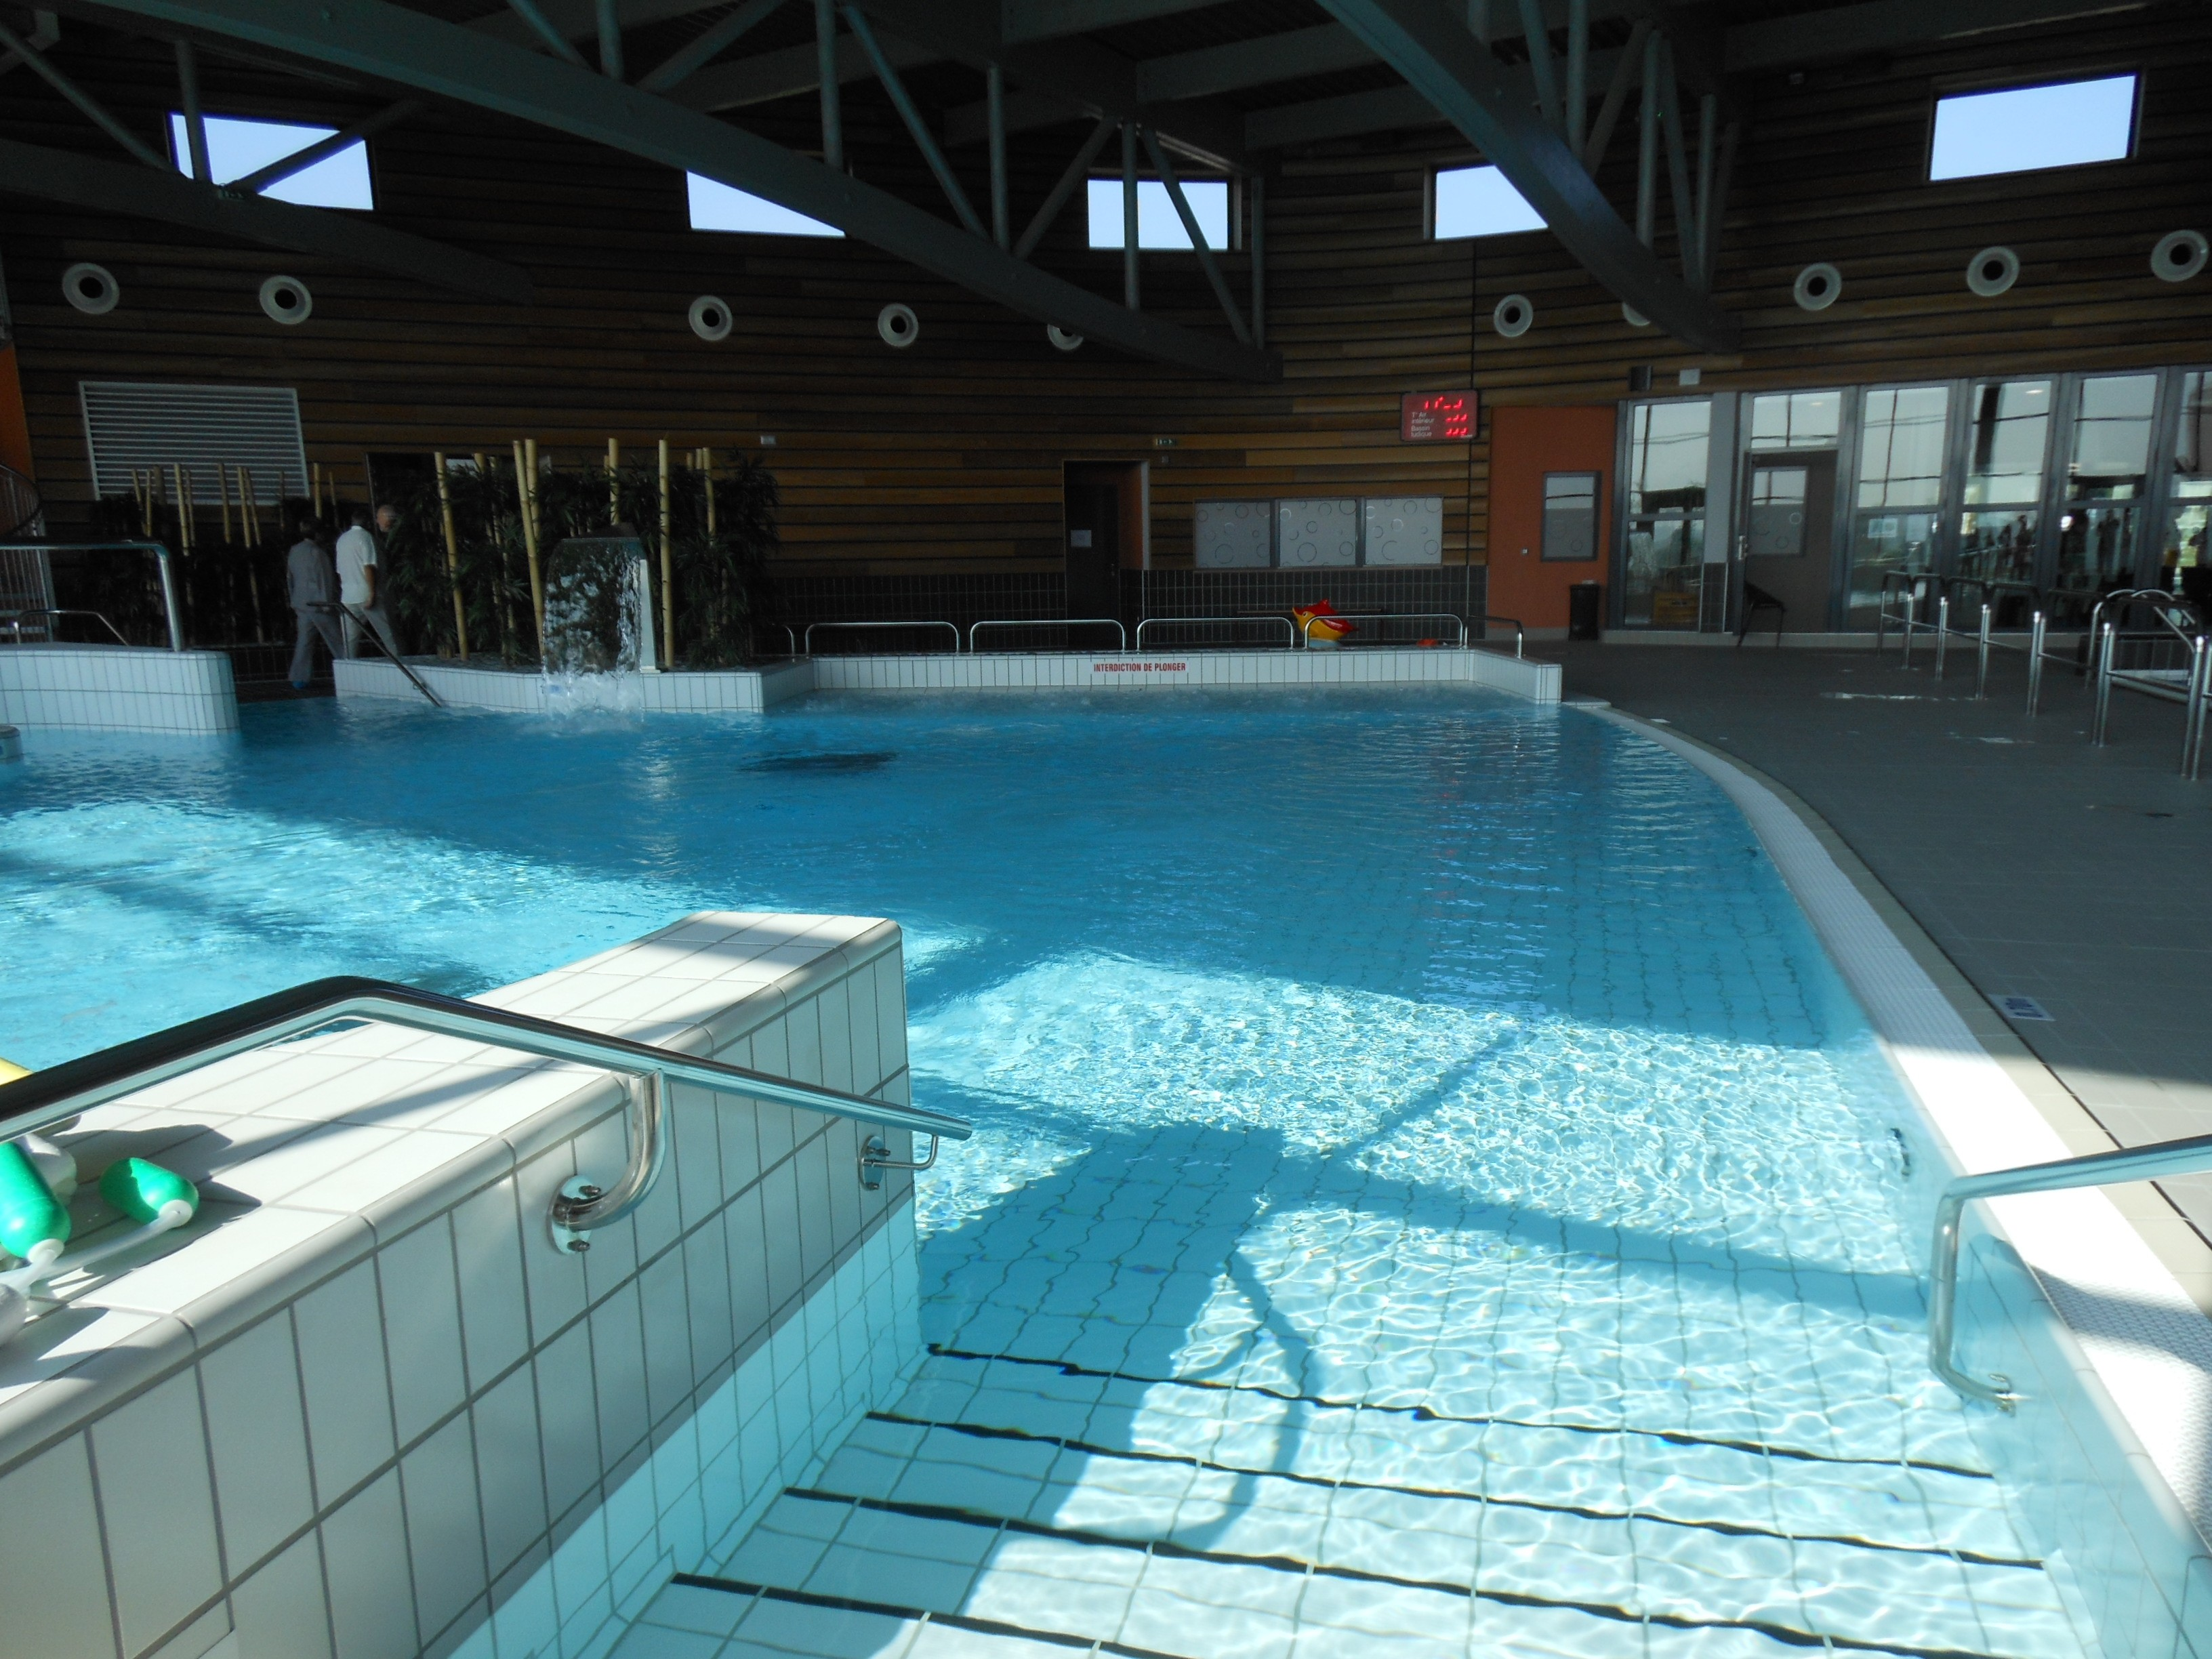 inauguration de la piscine pavilly demain